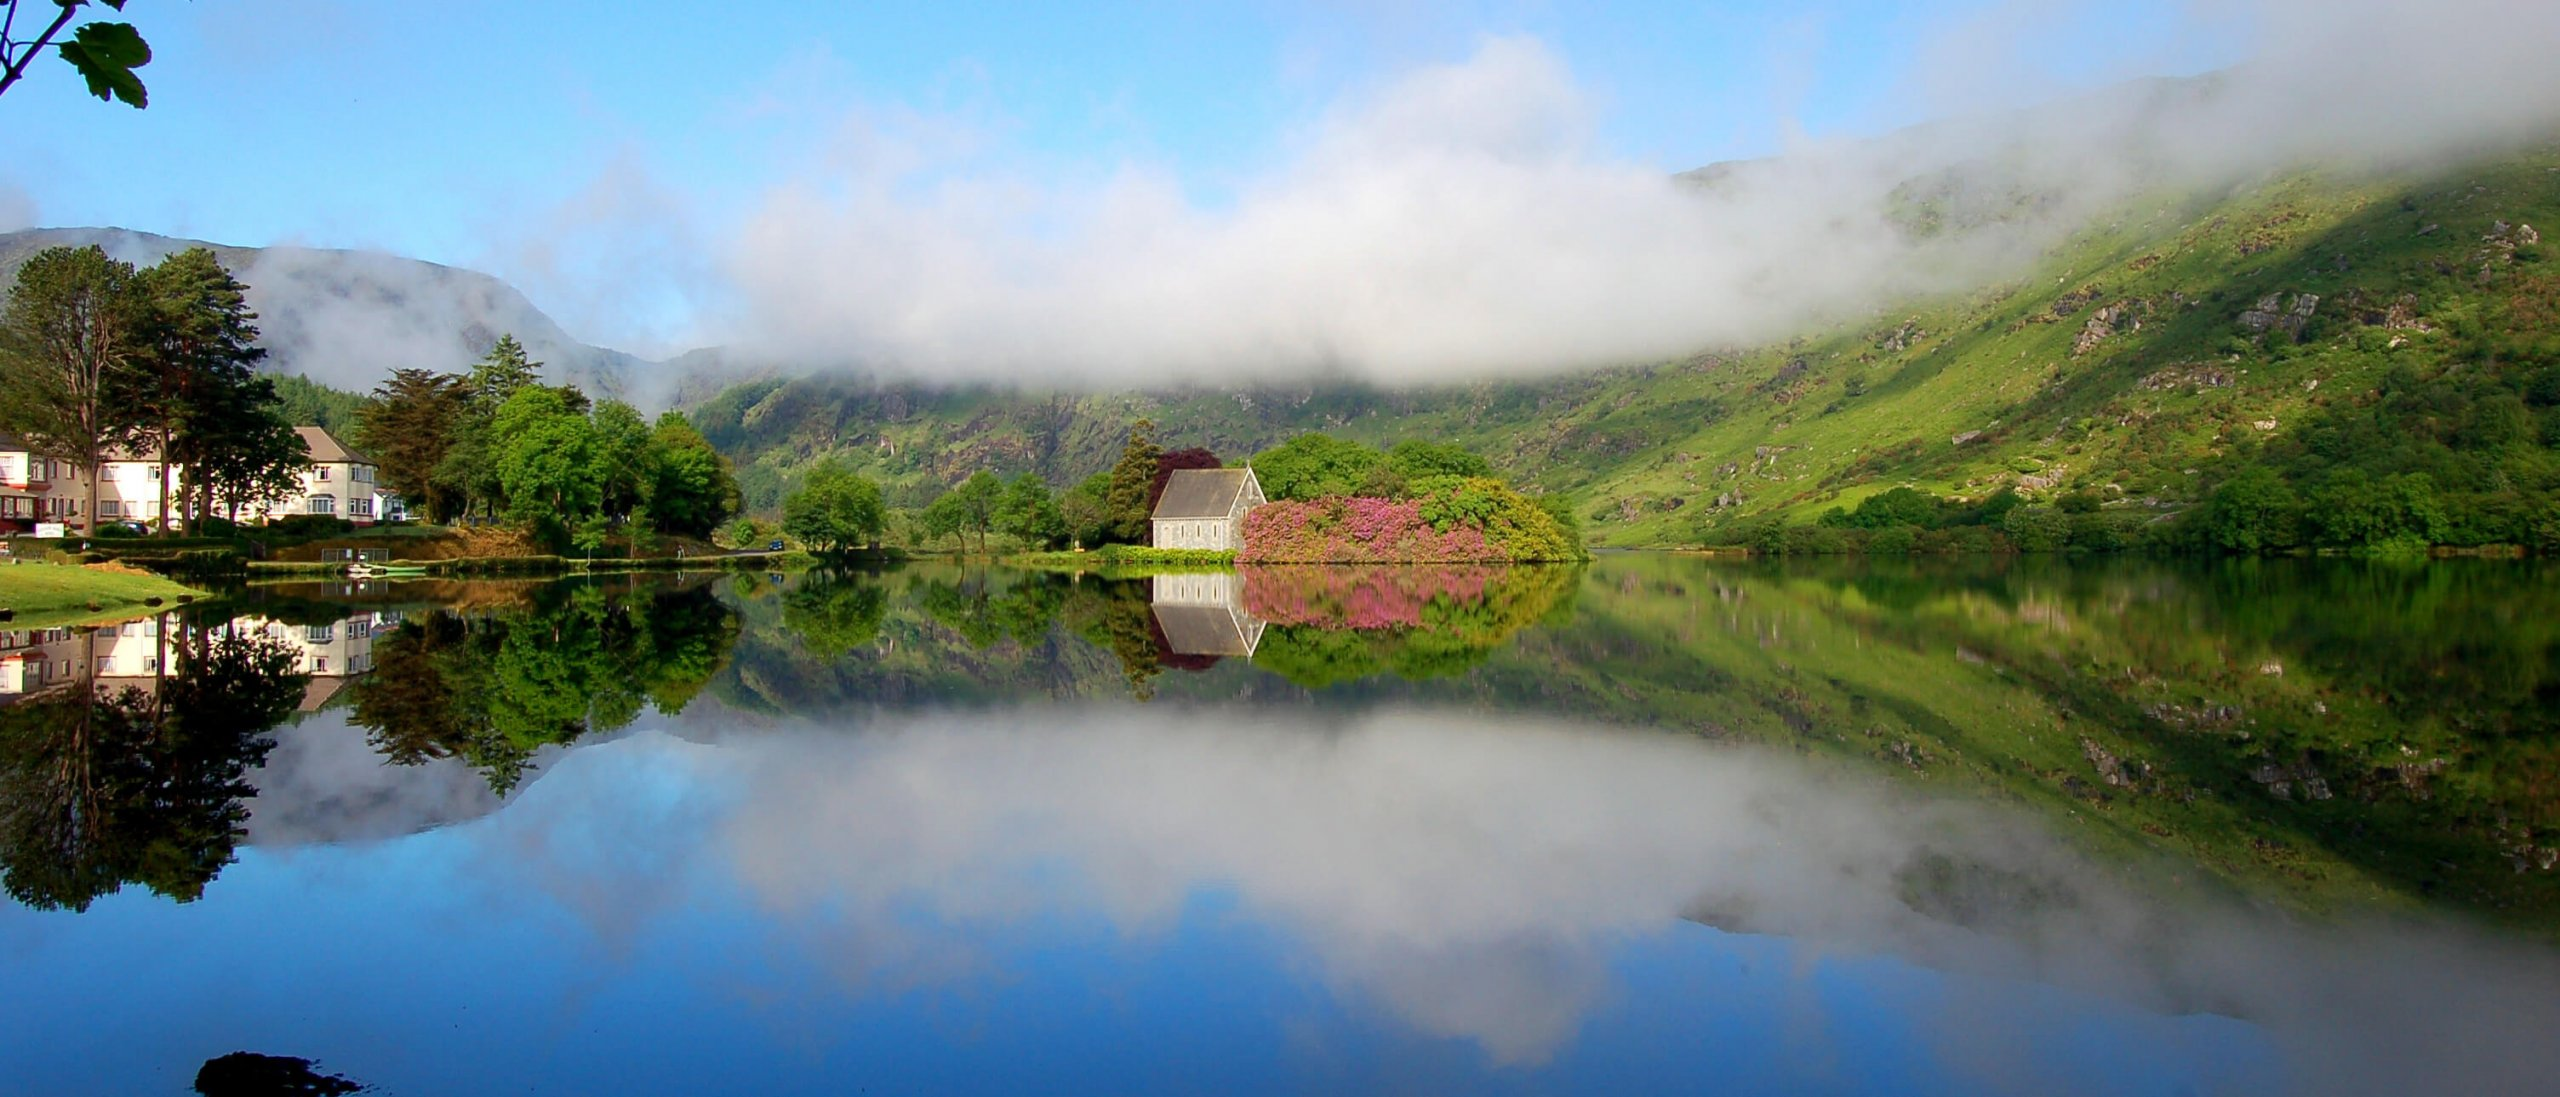 Scenic church and reflection of blue sky, clouds and green mountains in lake at Gougane Barra, Ireland